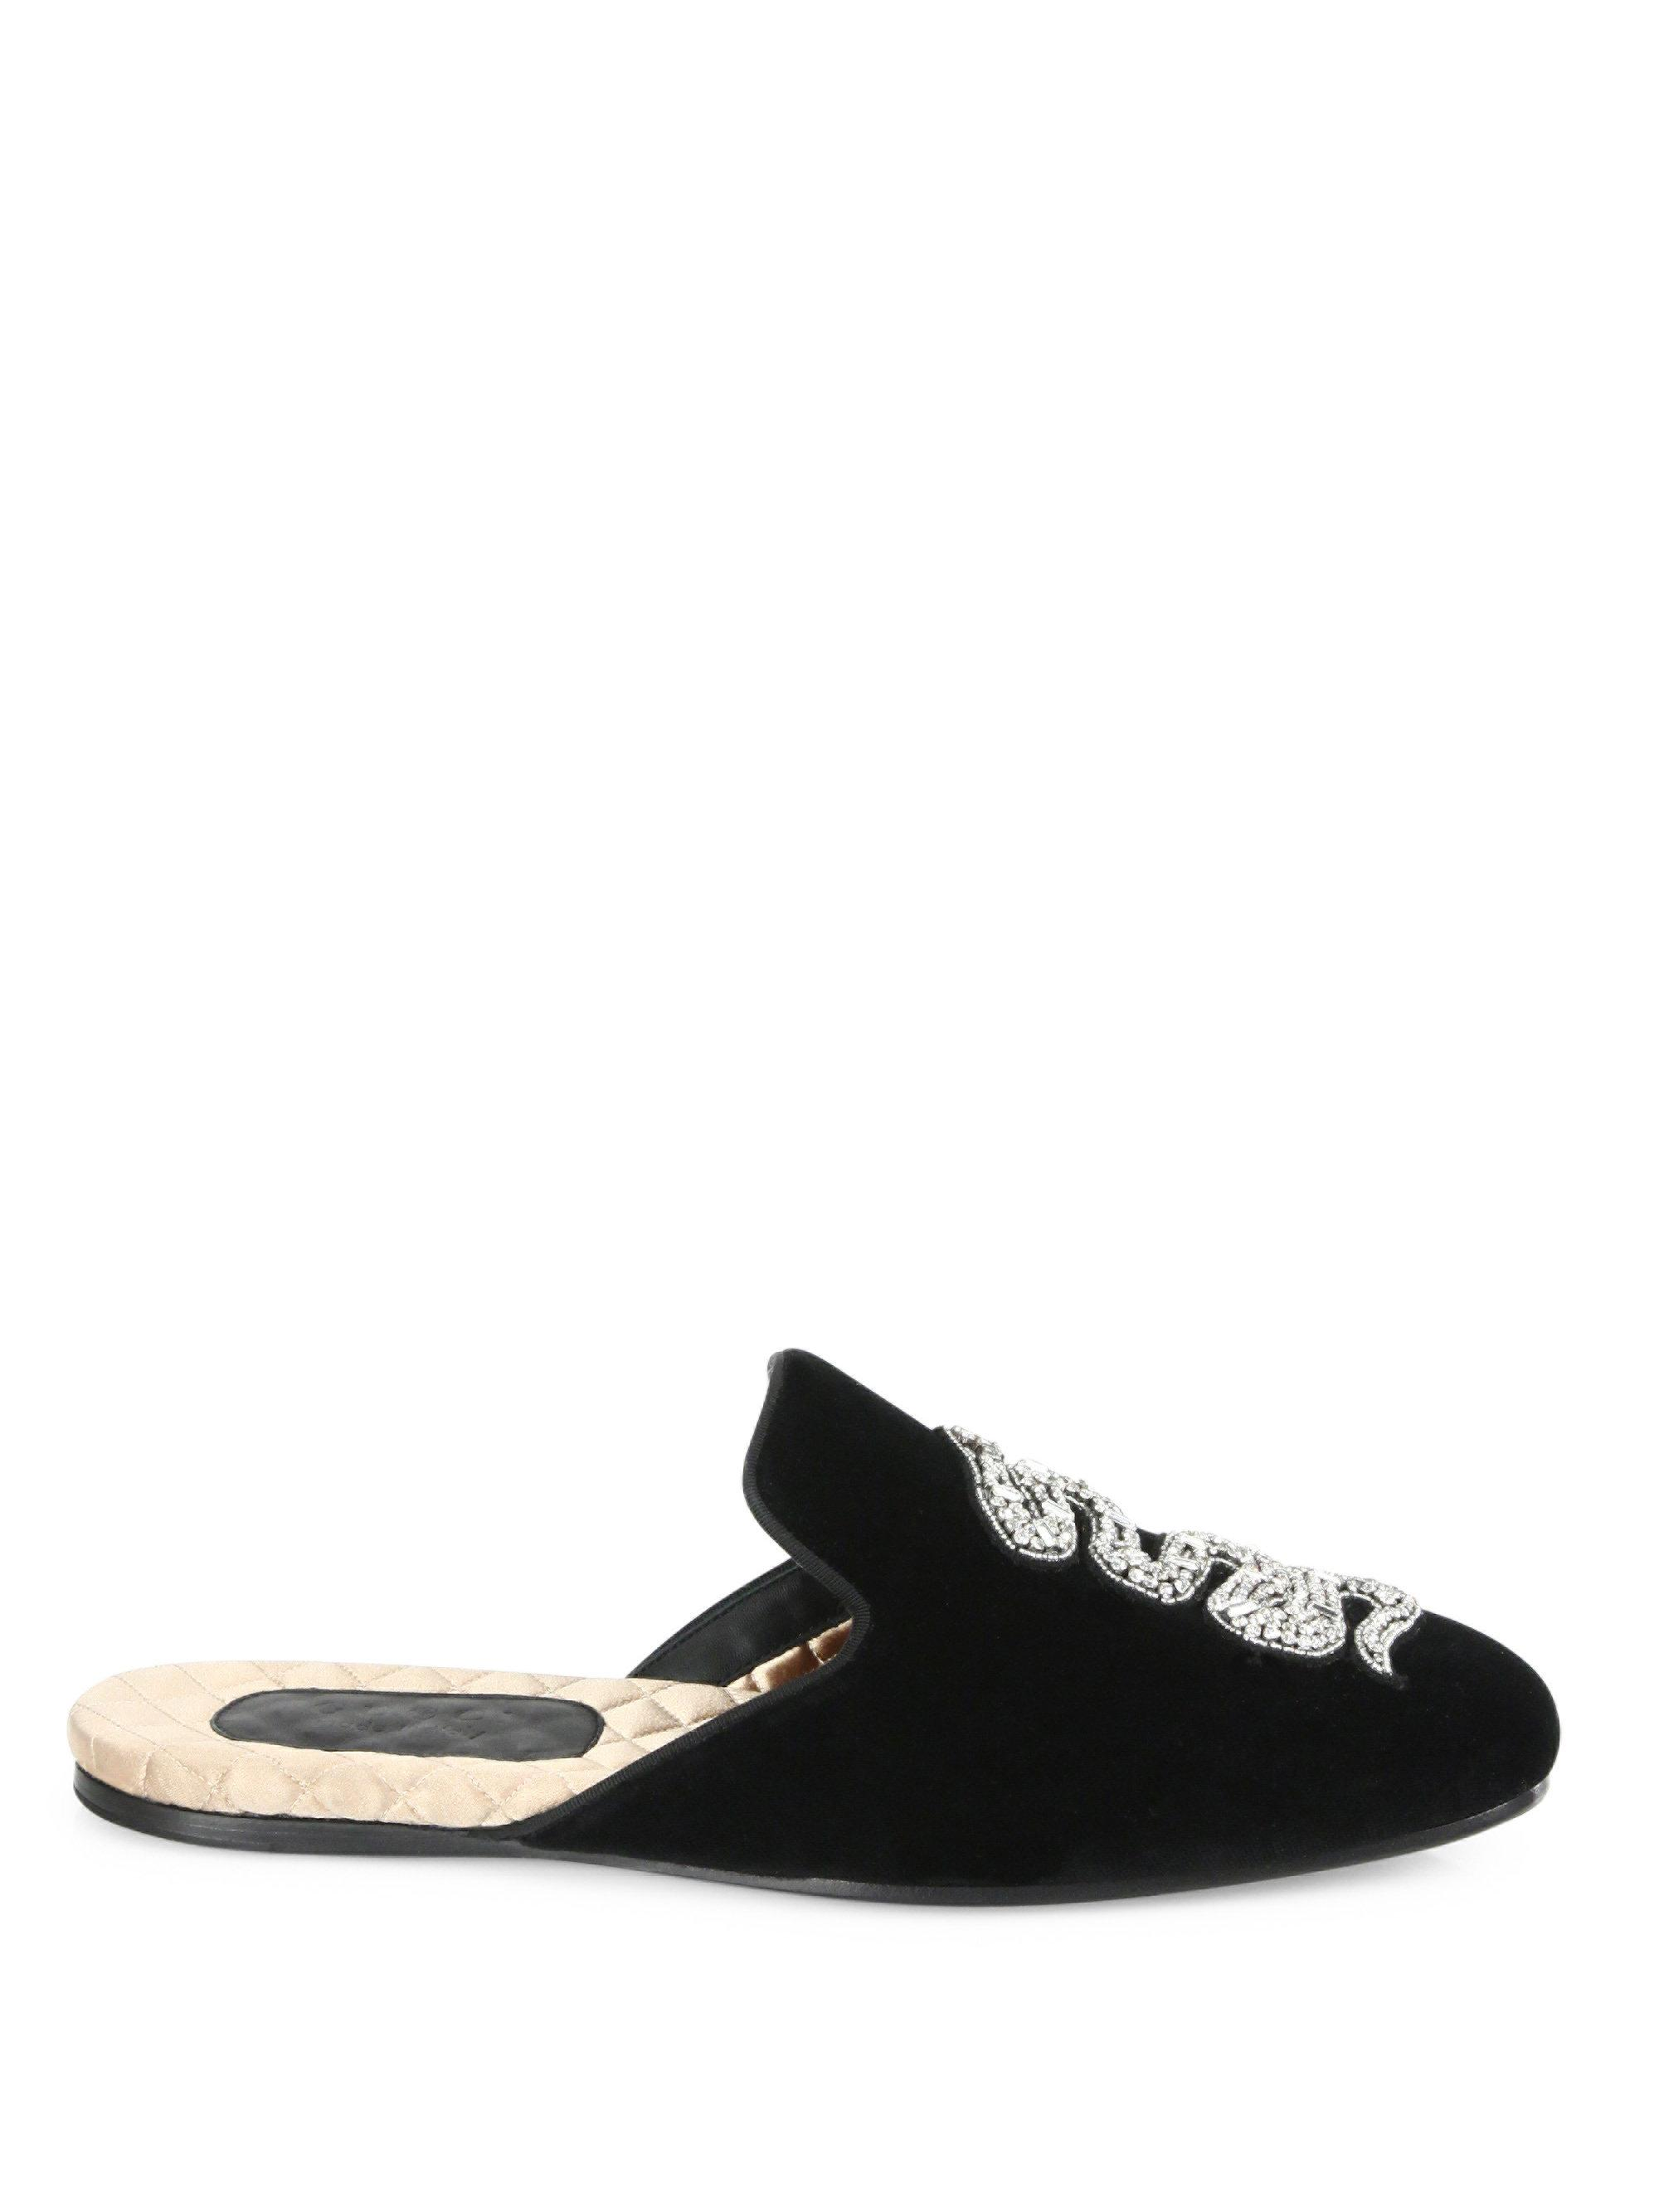 beb4c52ac78 Lyst - Gucci Snake-embroidered Velvet Evening Slippers in Black